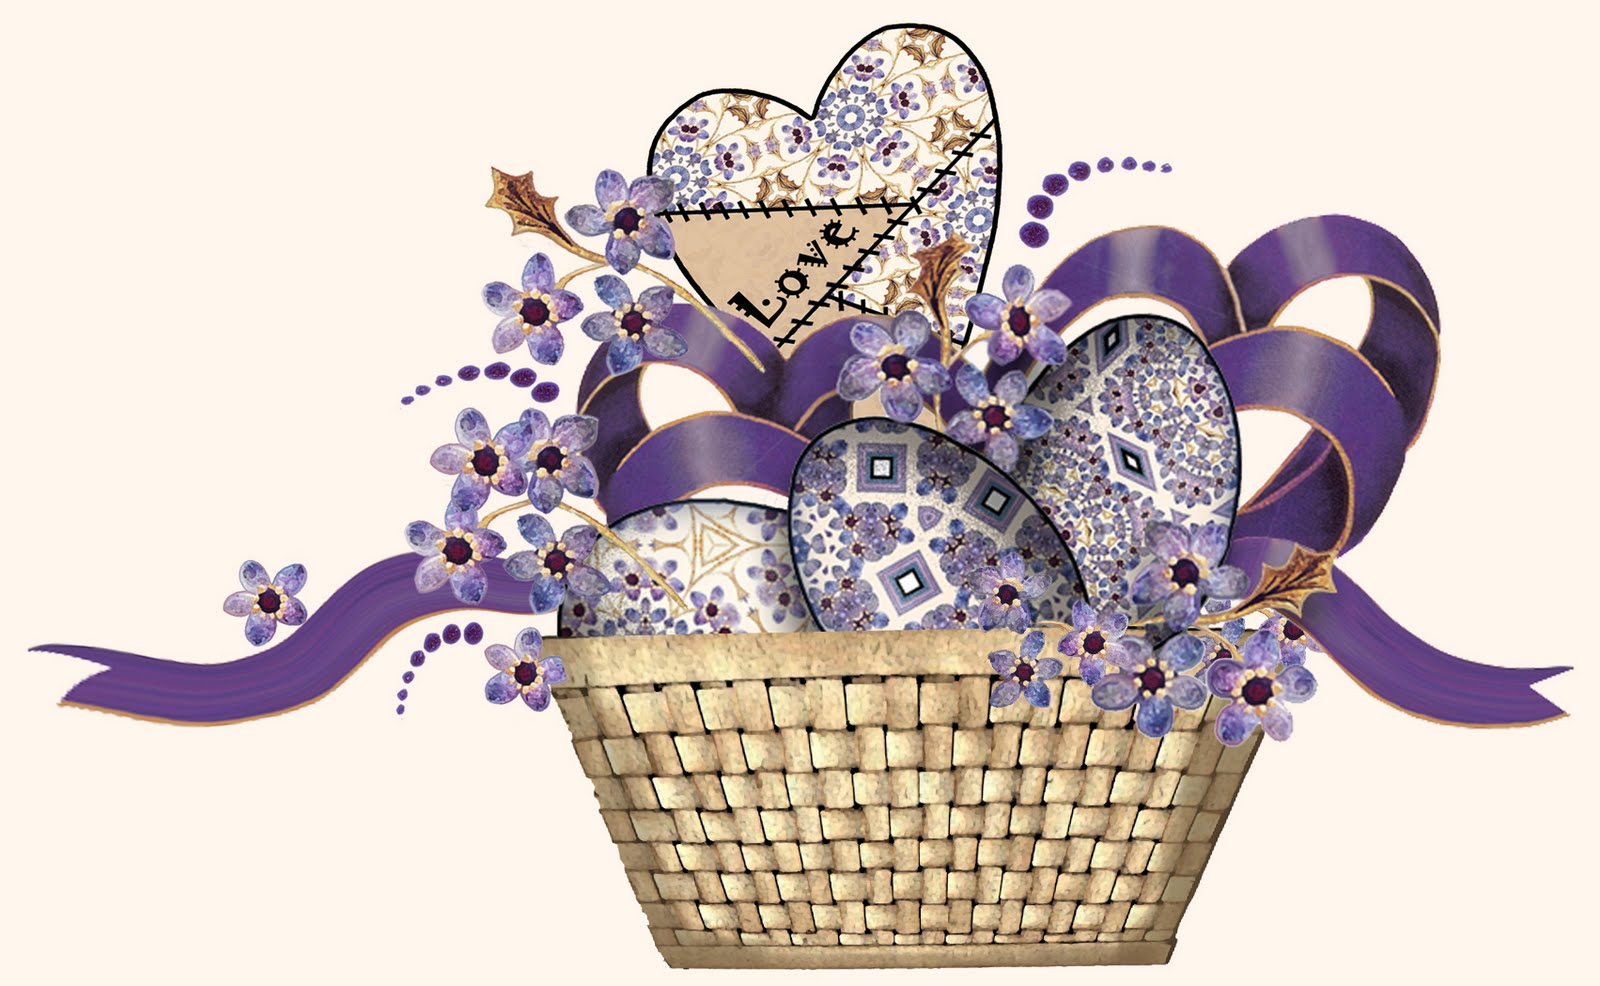 Free Gift Basket Cliparts, Download Free Clip Art, Free Clip.